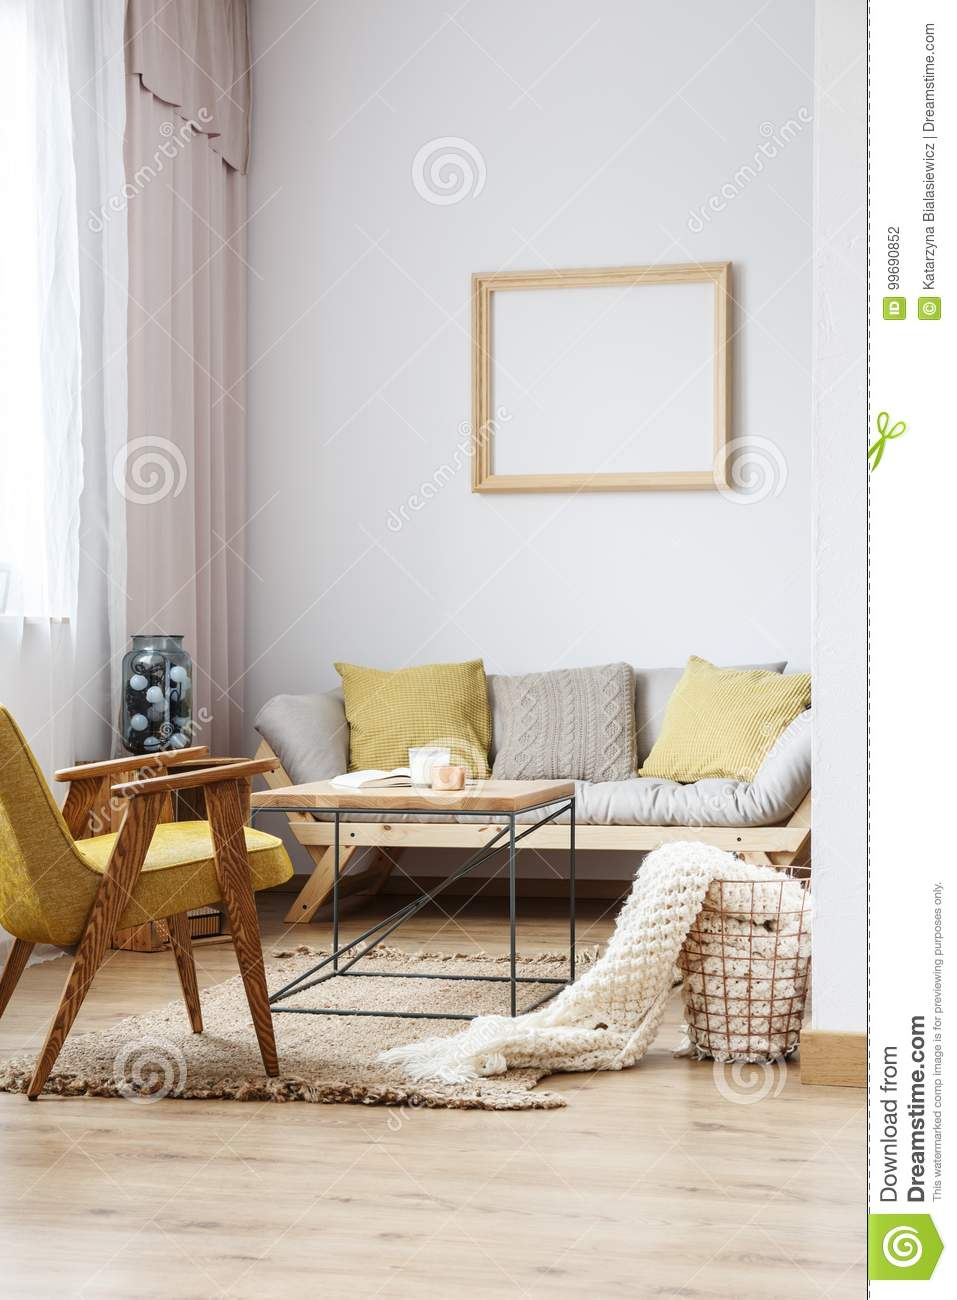 Salon beige et jaune photo stock. Image du brun, moderne ...